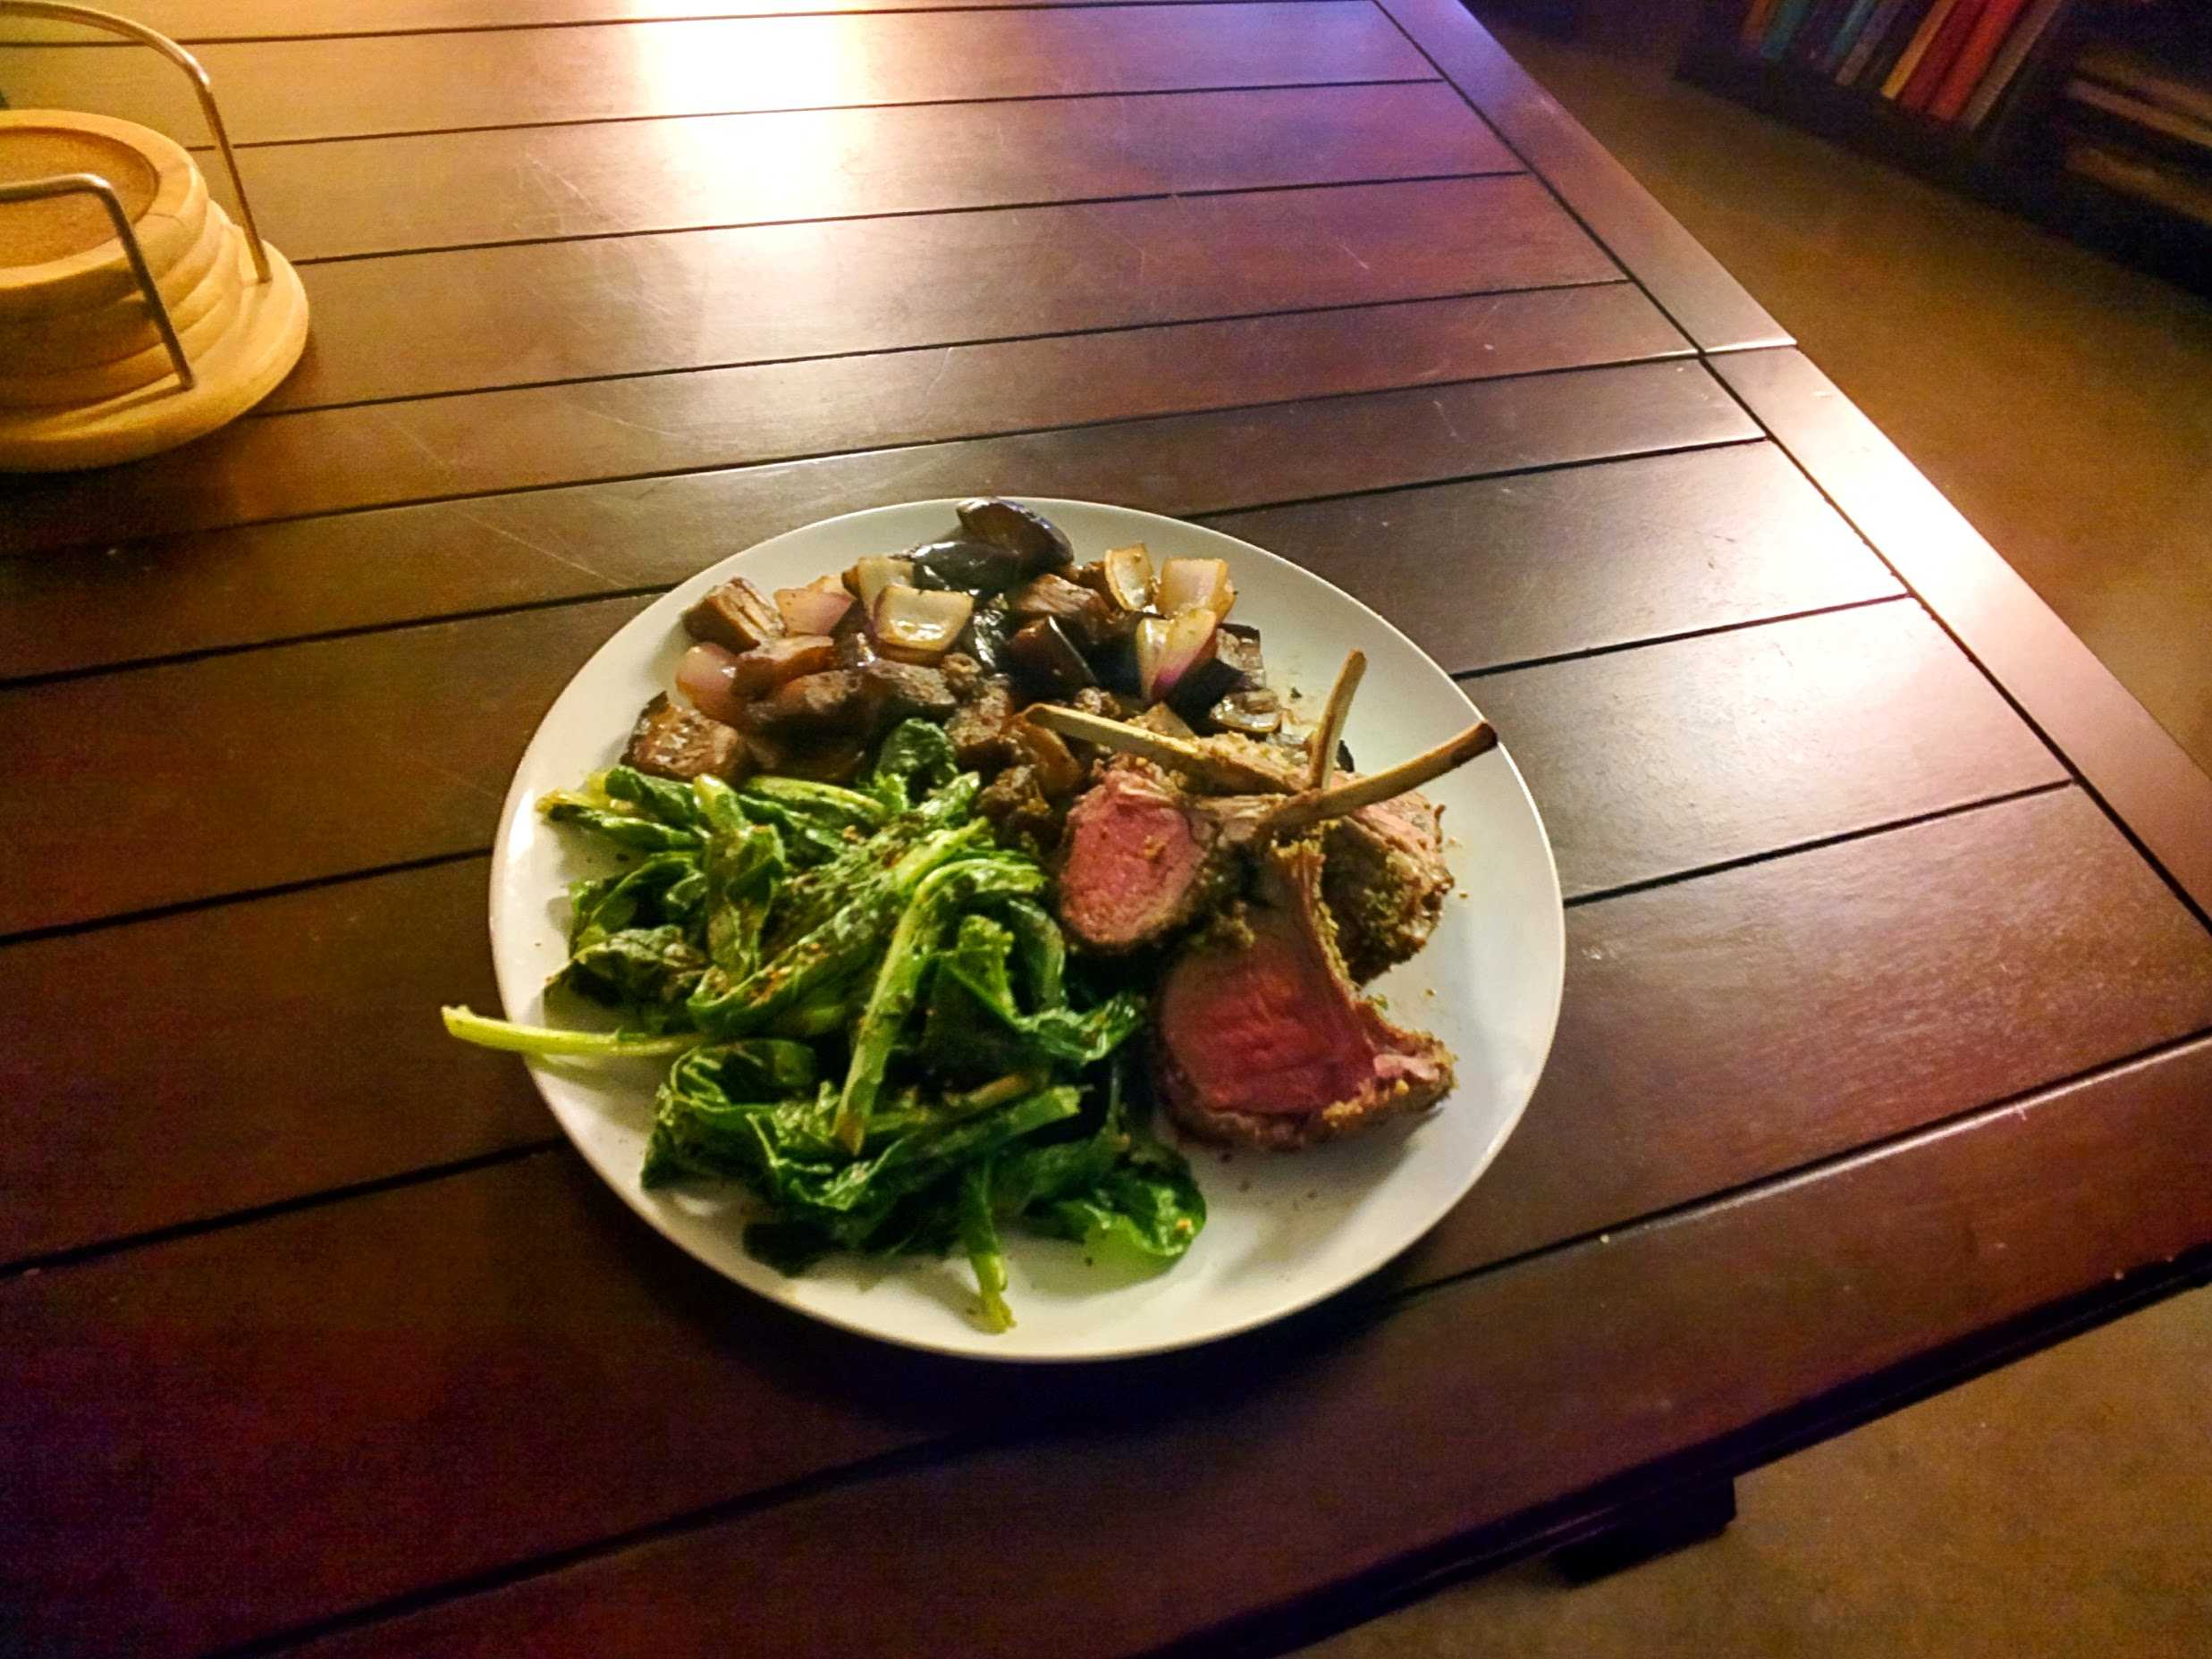 Wasabi Peas & Soy Nut Encrusted Rack of Lamb cover image